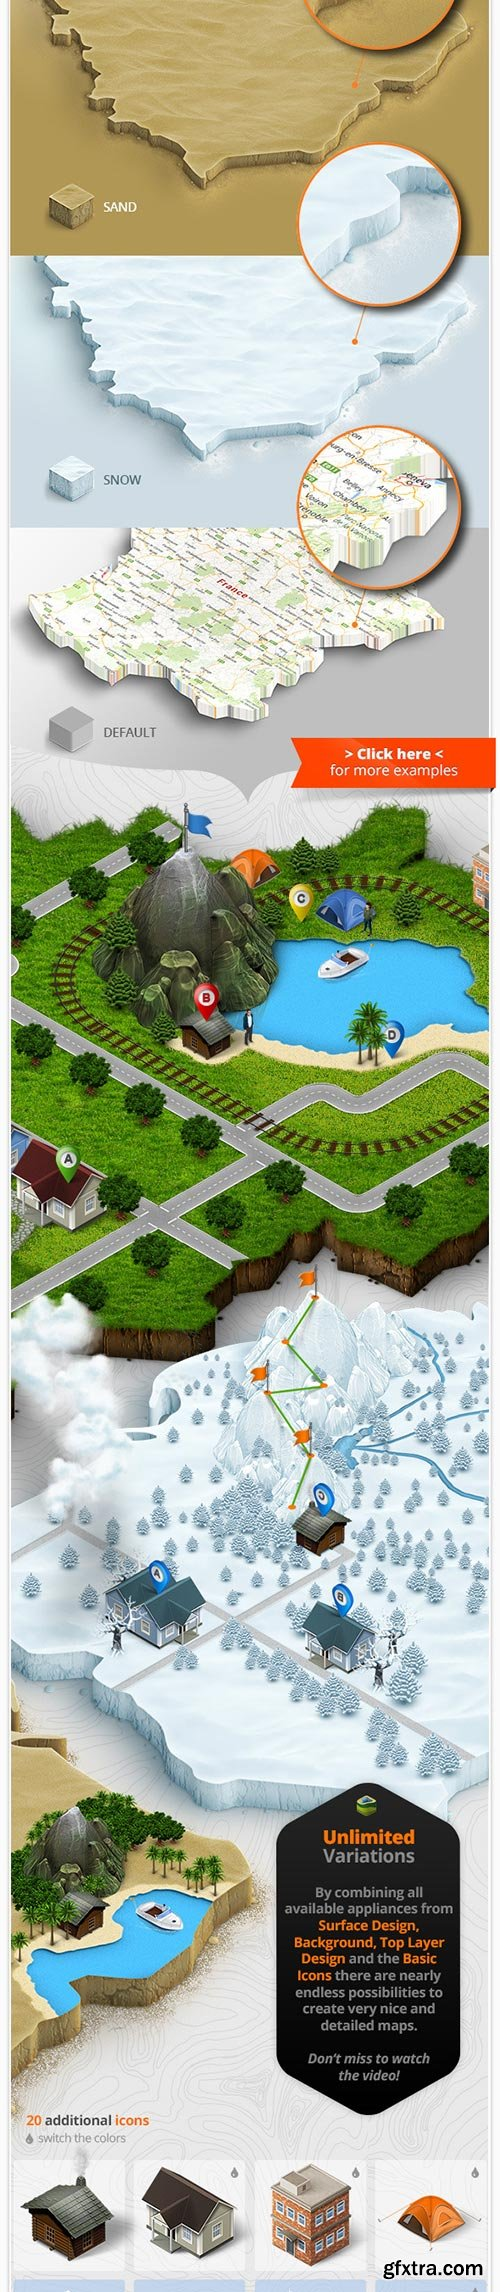 Graphicriver 3d map generator 2 isometric 7667950 vector graphicriver 3d map generator 2 isometric psd png jpg abr asl atn csh zxp cs4 rar 128 mb gumiabroncs Gallery